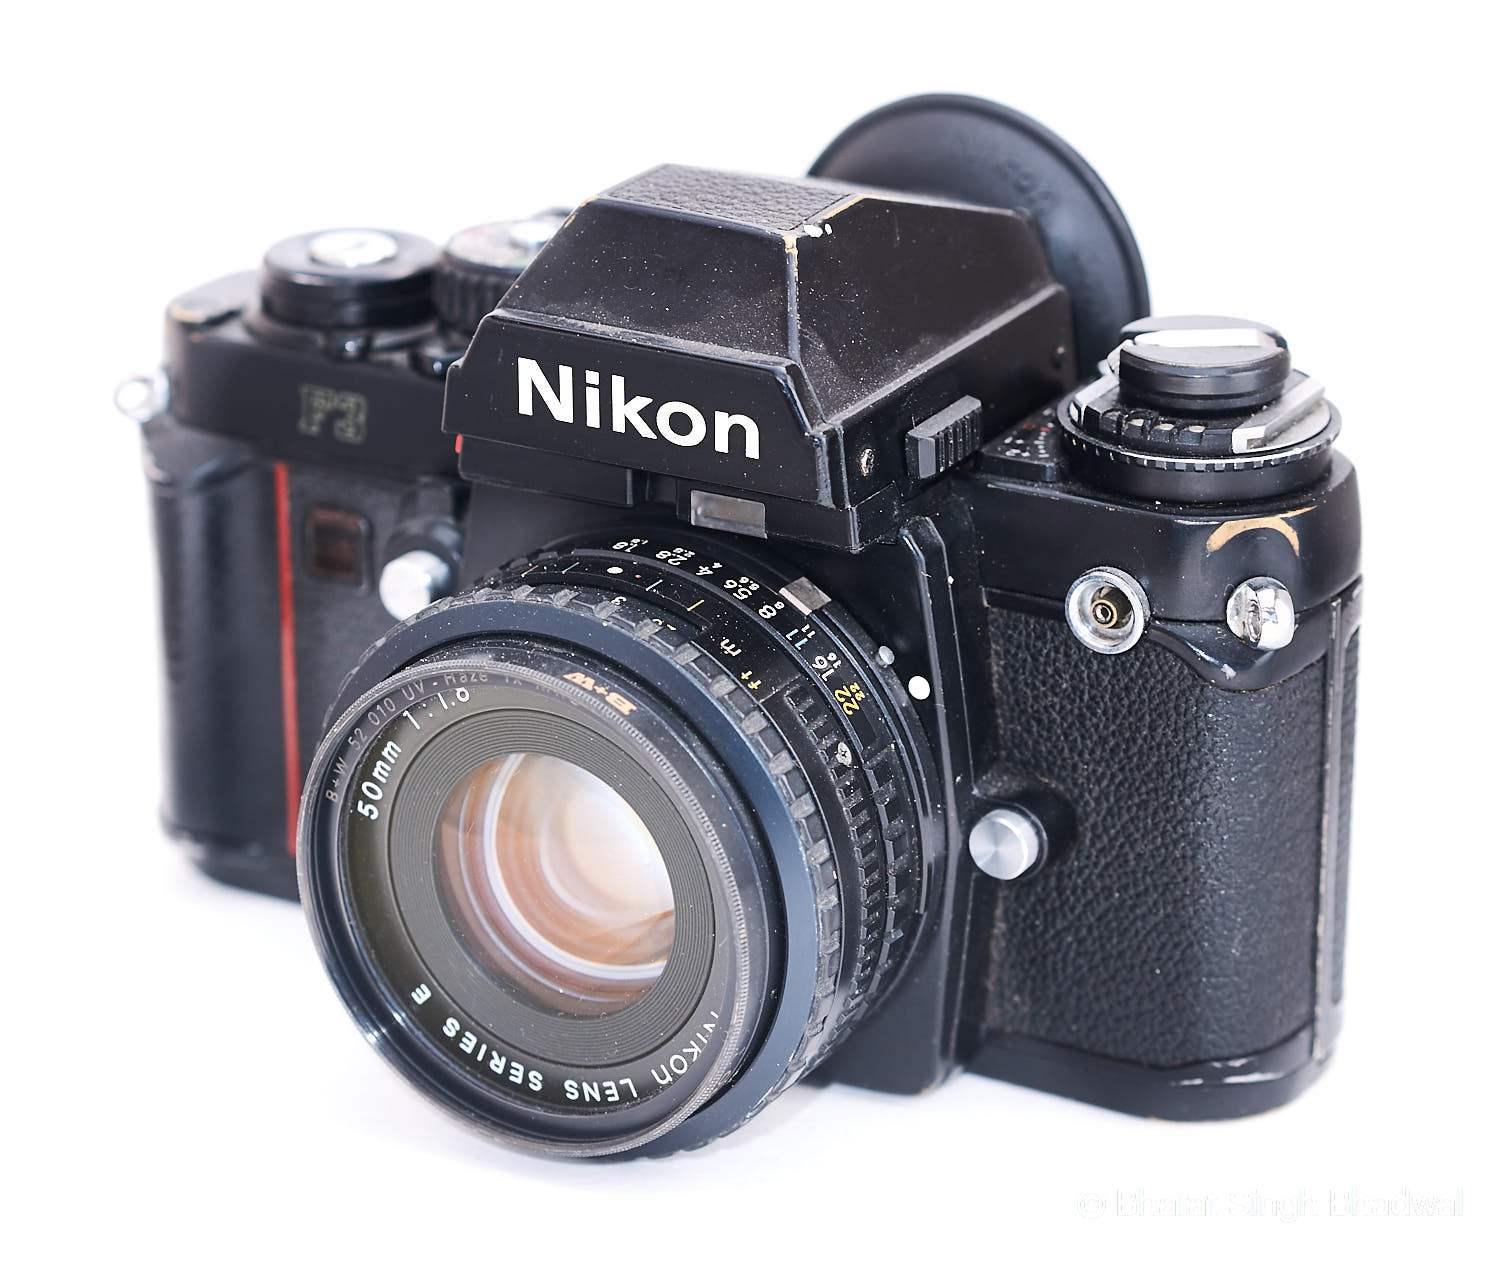 Our Nikon F3. Note the brassing on the side and a minor dent on top of the pentaprism. The dent on the pentaprism was a result of a 4 foot drop on hard concrete. Such ruggedness is hard to get in any current DSLR.